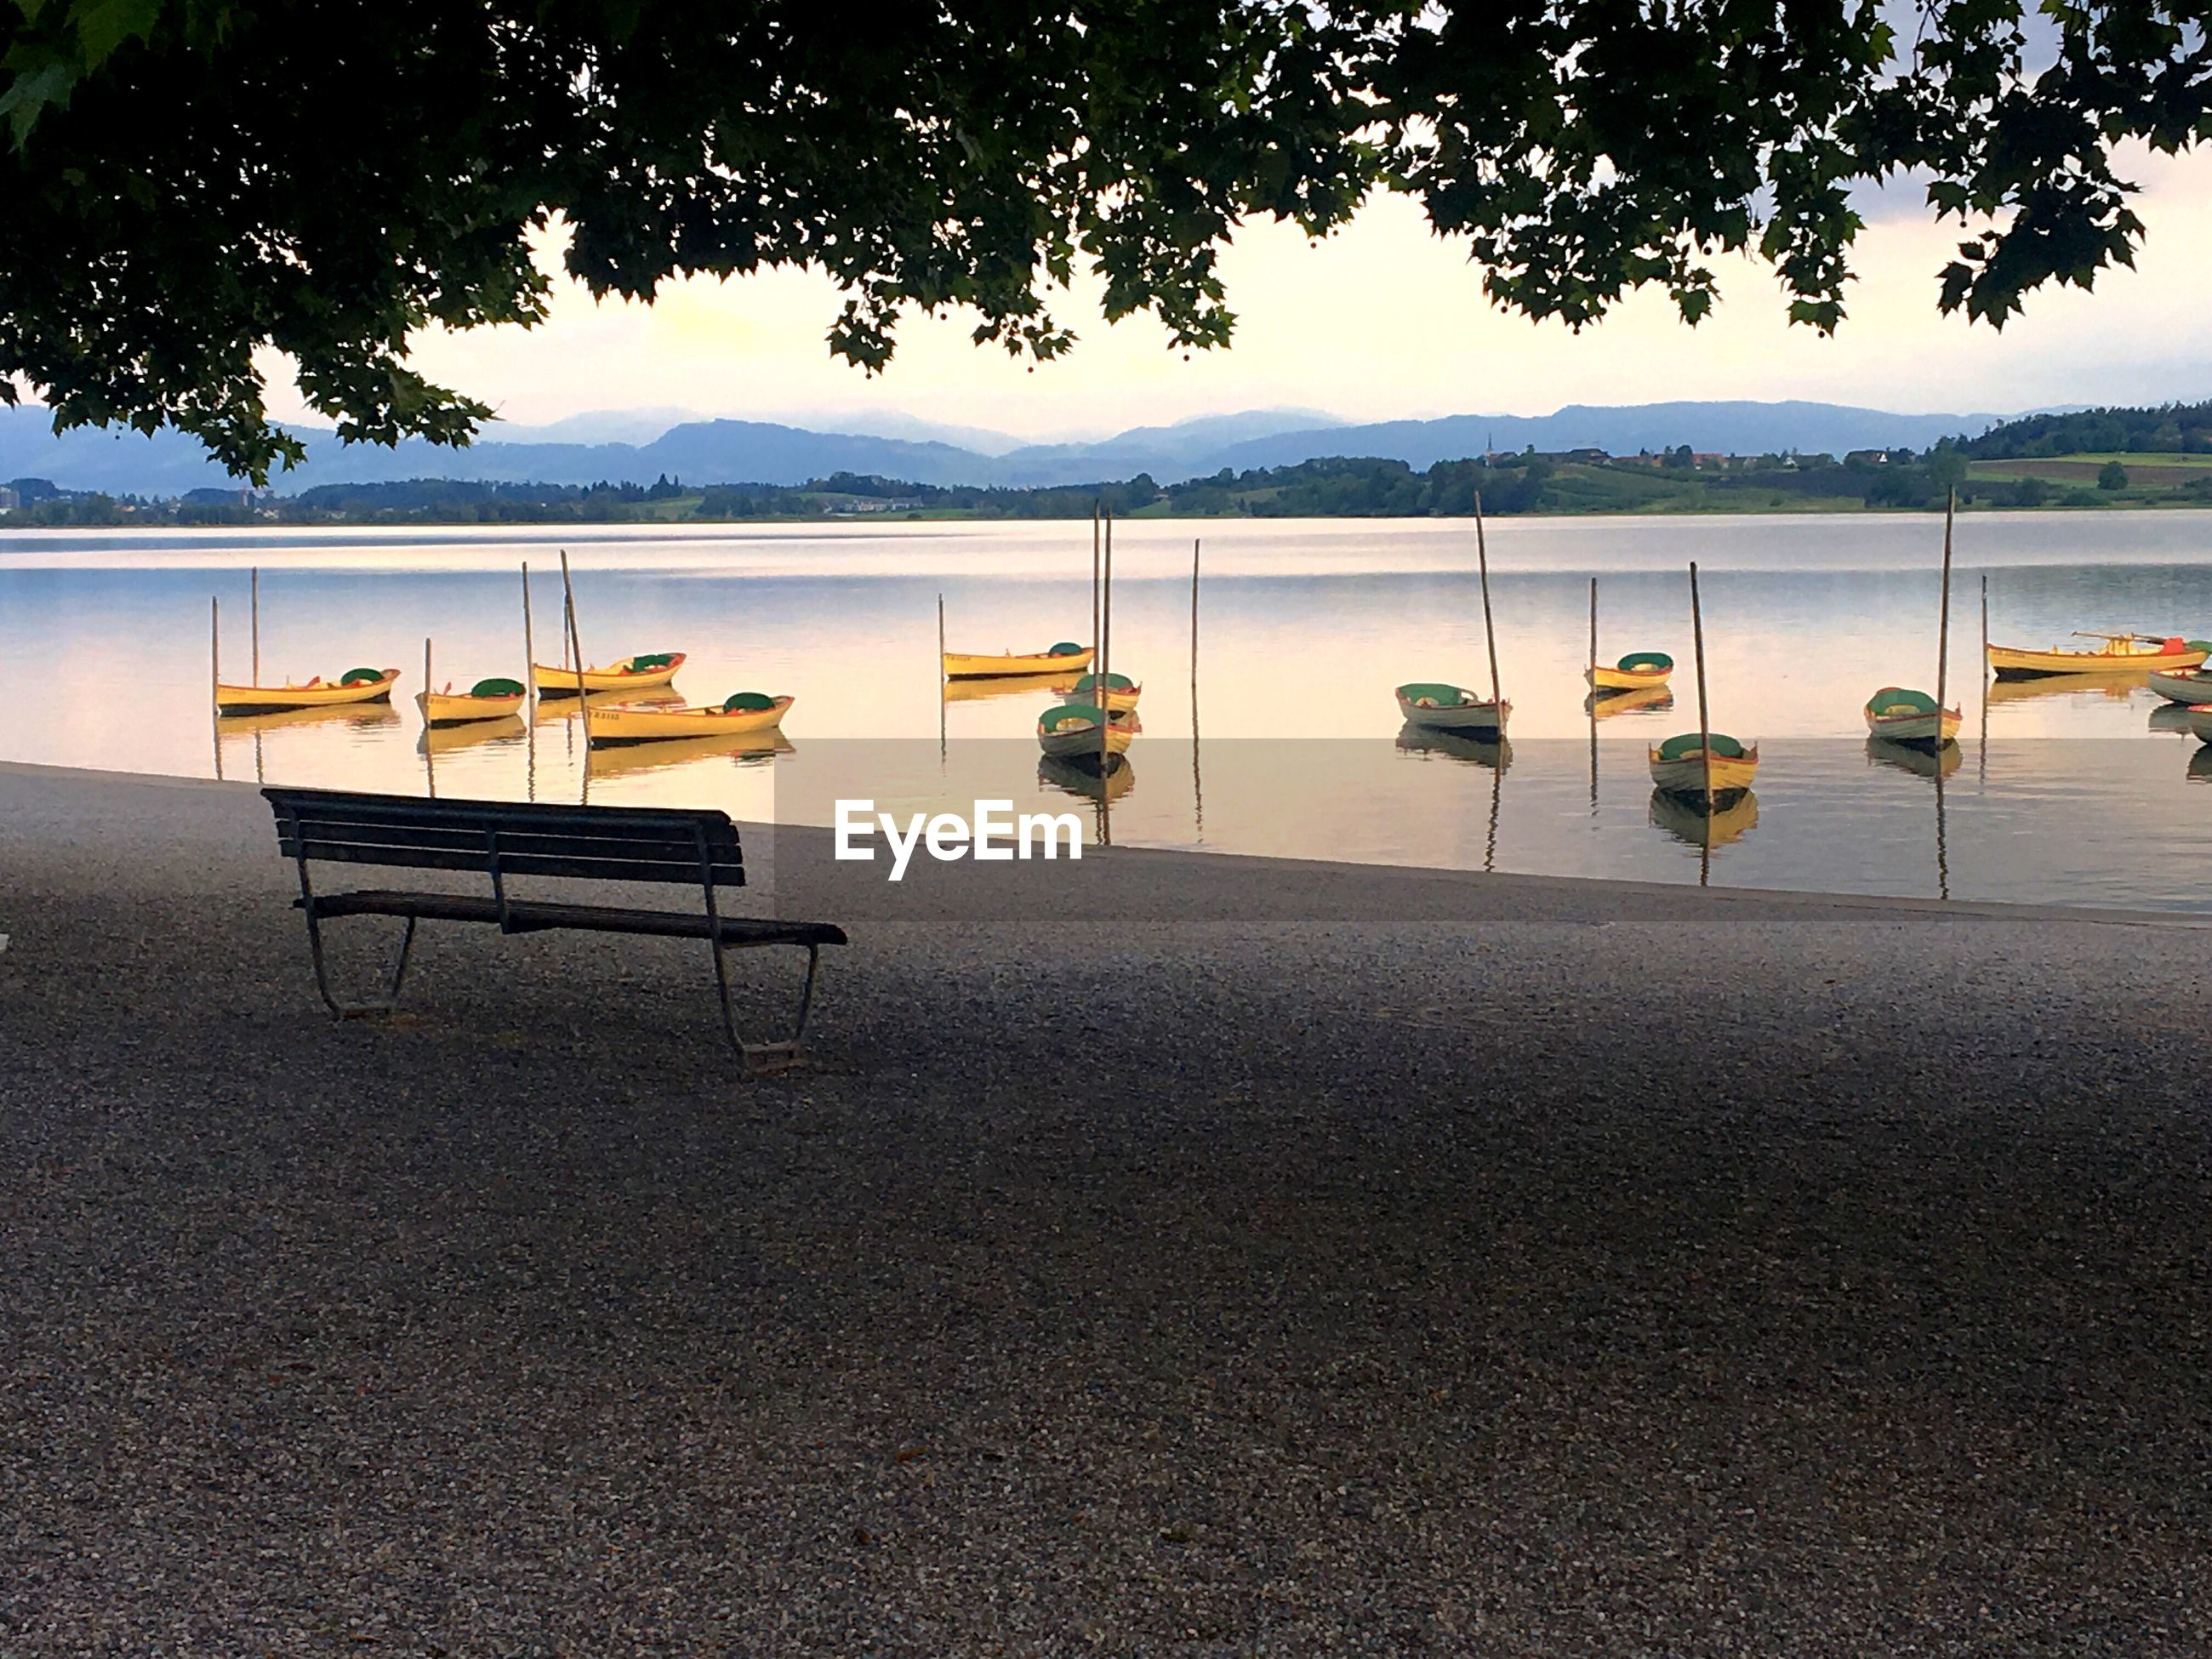 CHAIRS AND TABLE IN LAKE